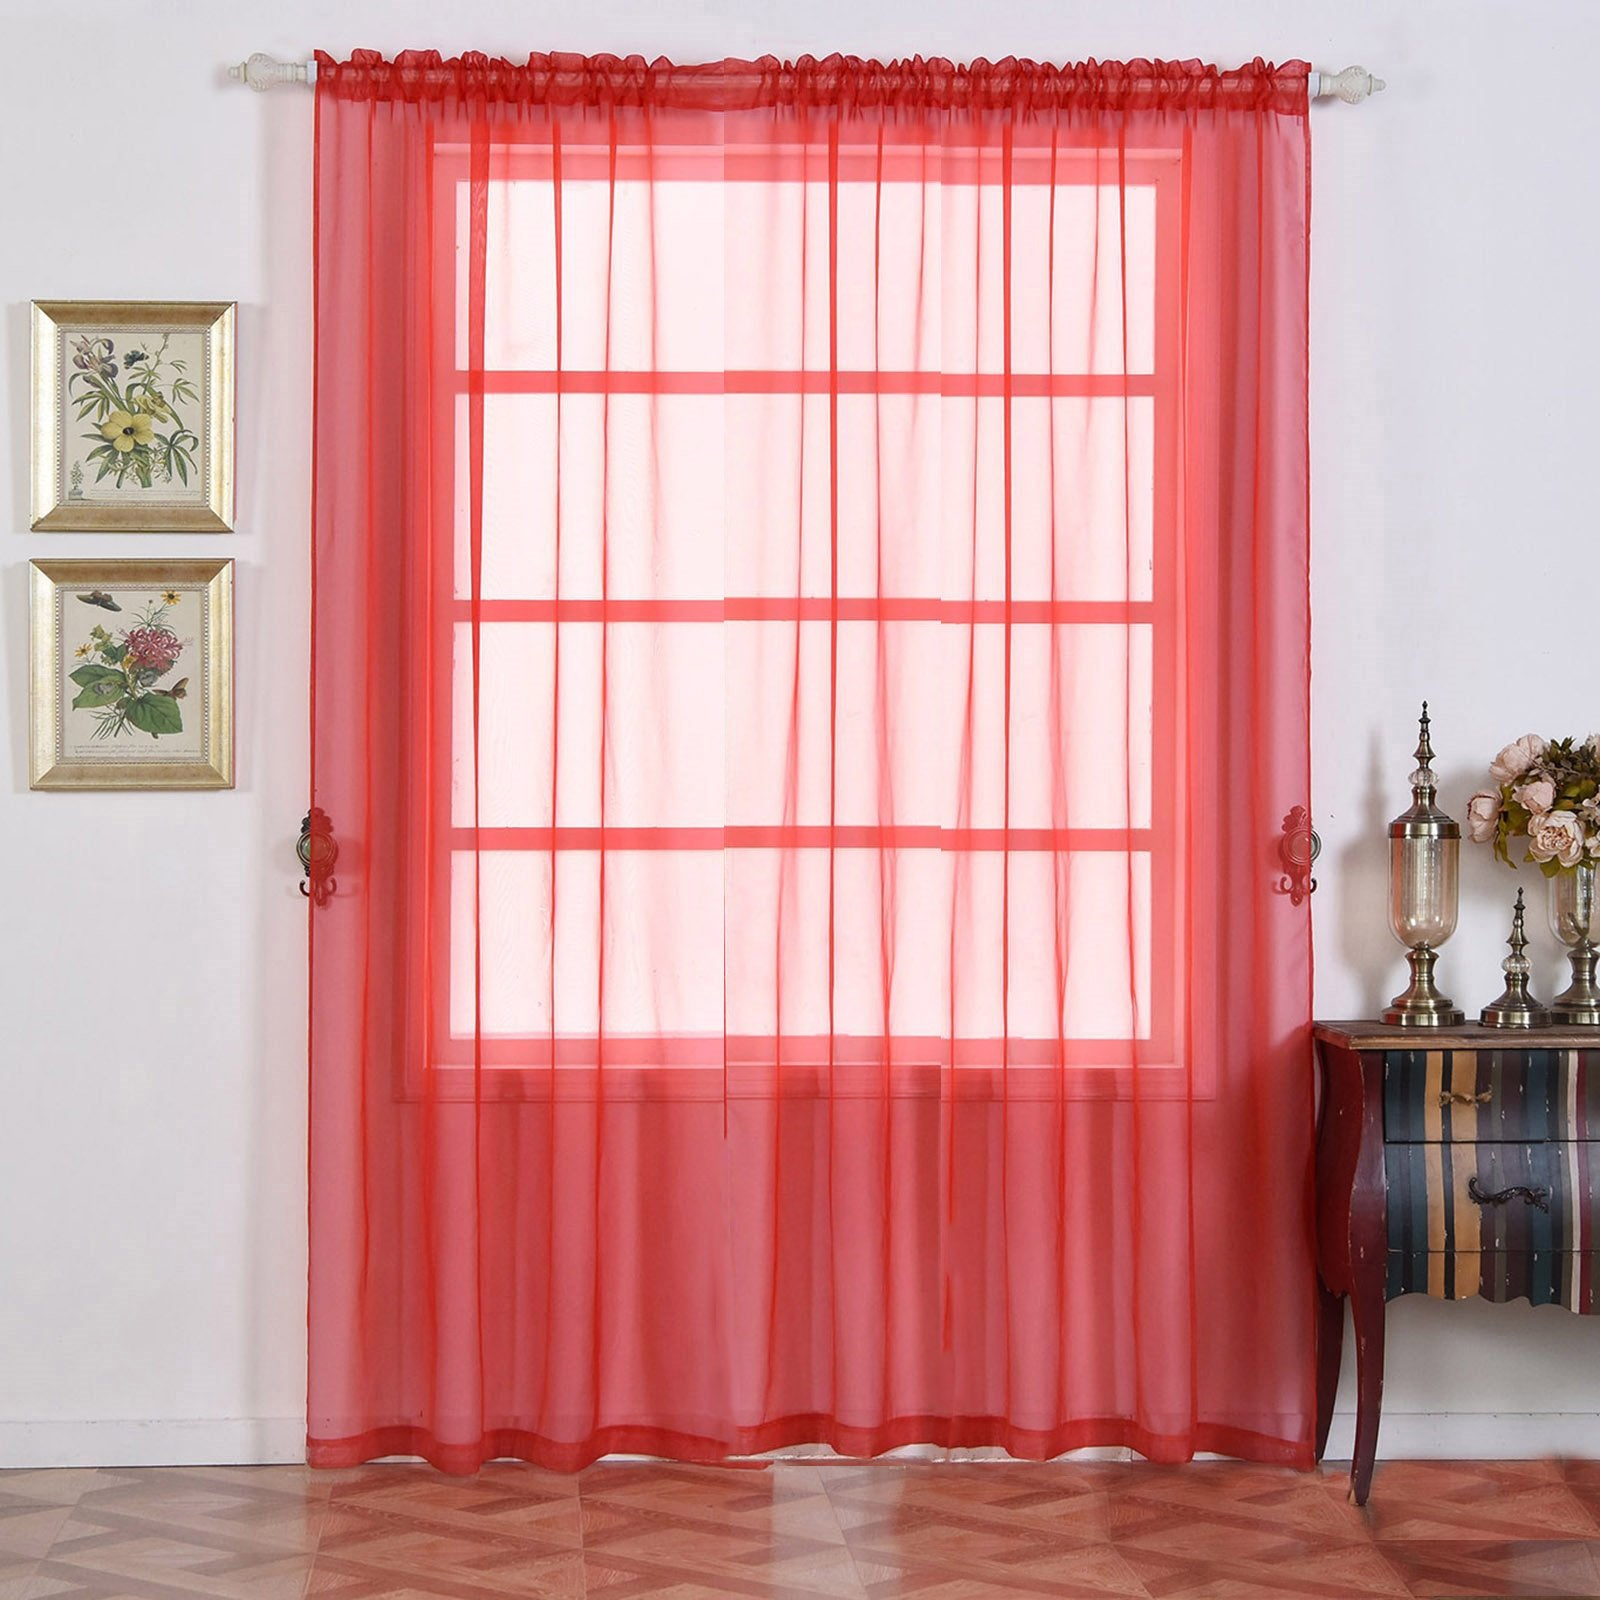 2 pack 52x96 red sheer organza curtains with rod pocket window treatment panels